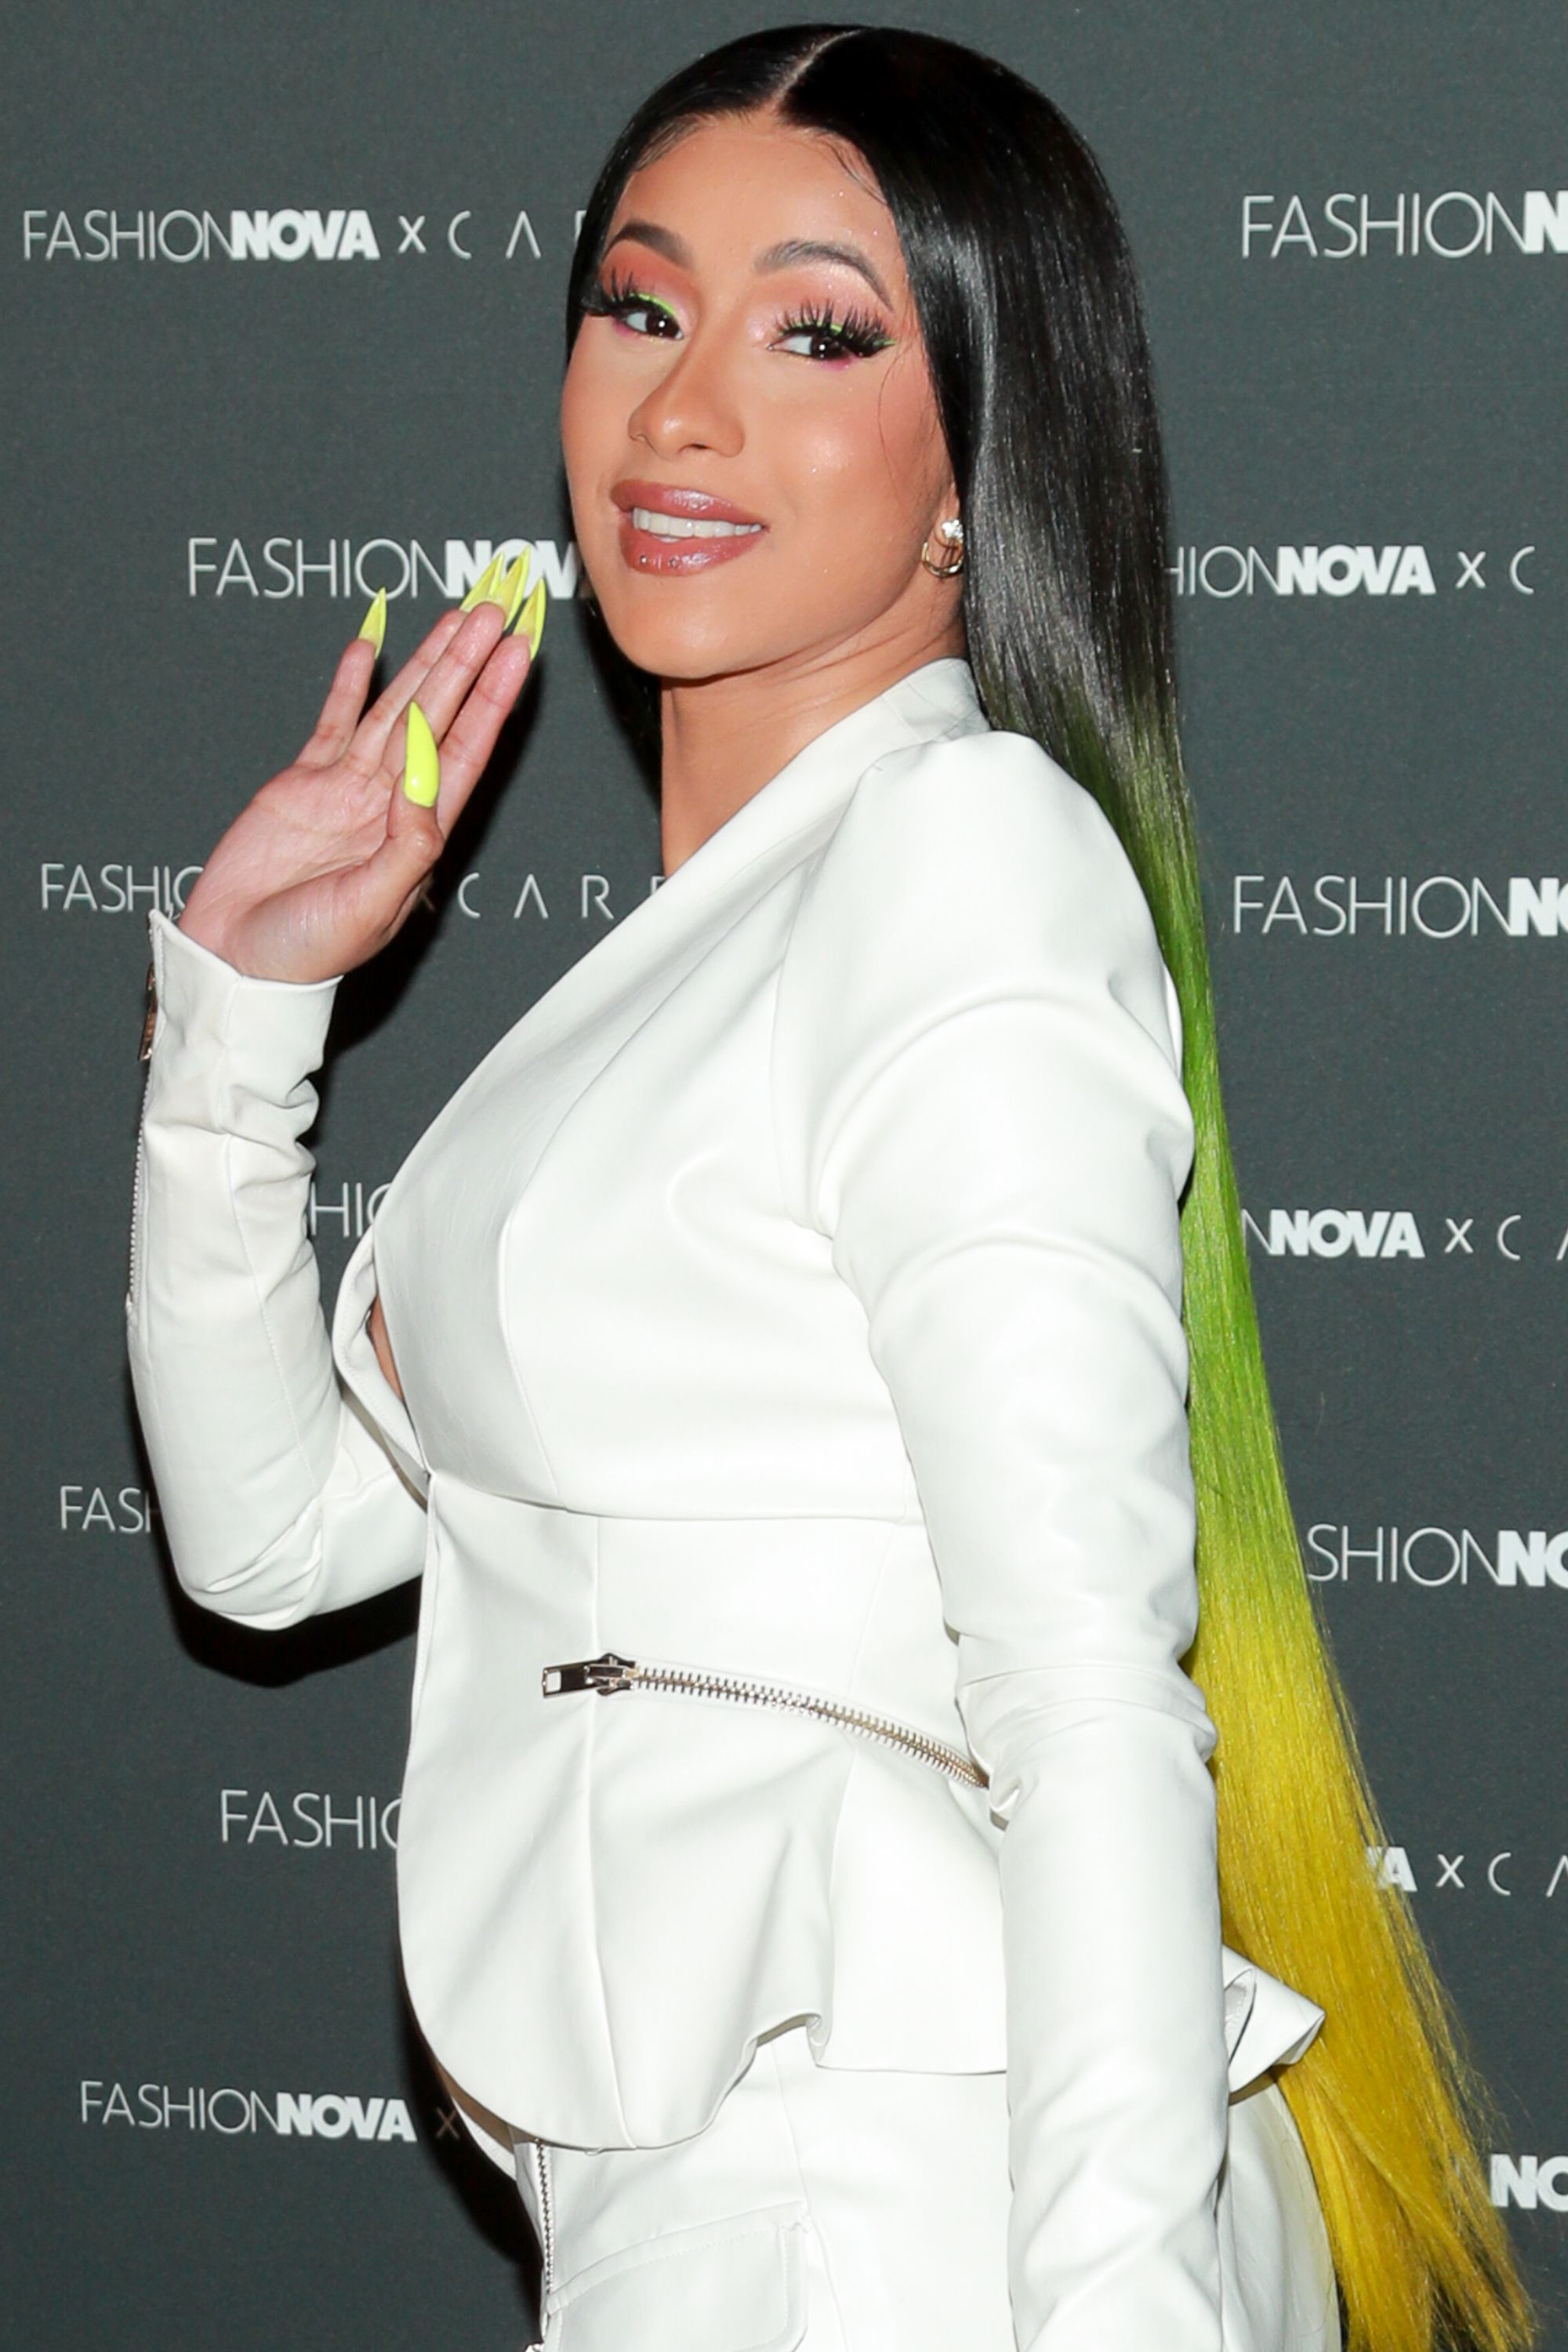 Cardi B attends the Fashion Nova x Cardi B Collection Launch Party at Hollywood Palladiumon May 08, 2019 in Los Angeles, California. | Source: Getty Images